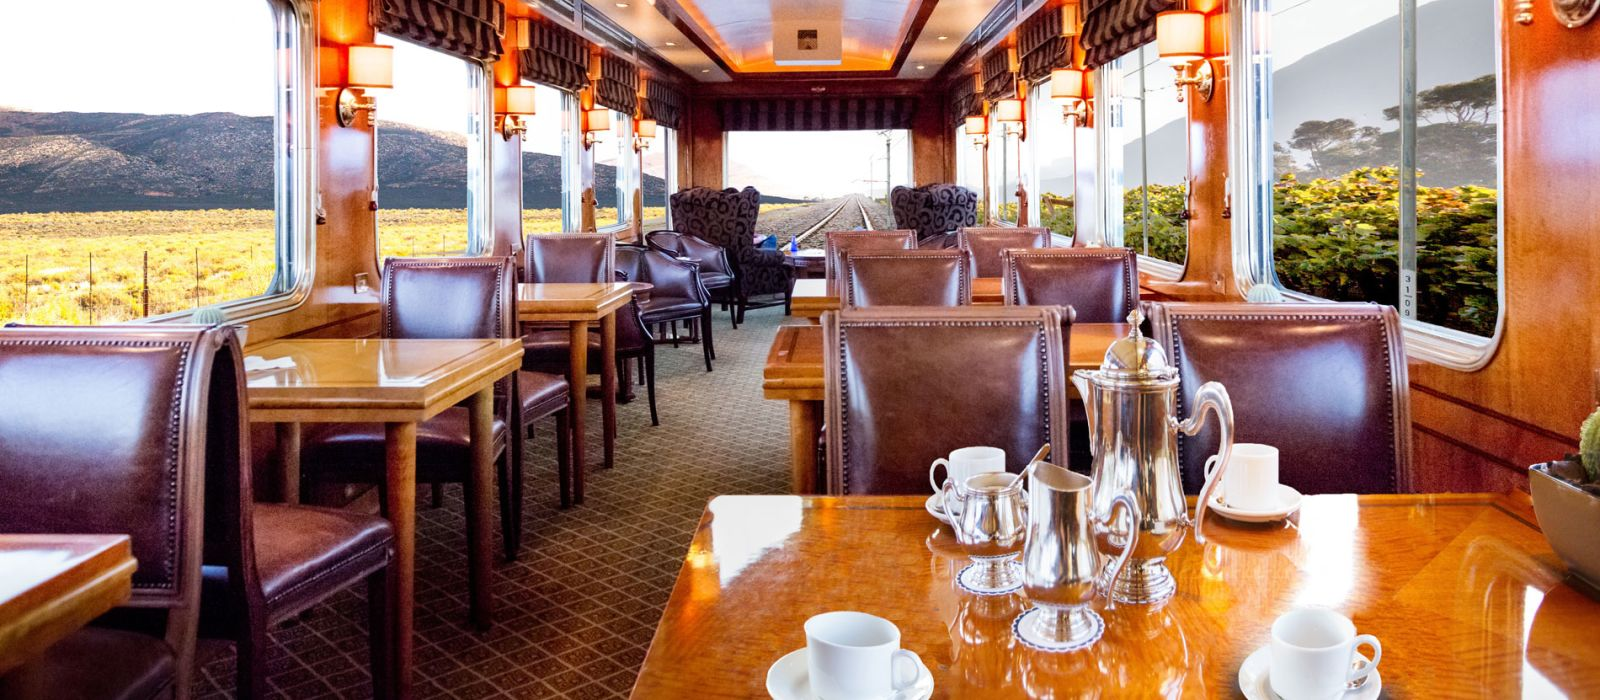 Hotel Blue Train (Pretoria – Cape Town) South Africa